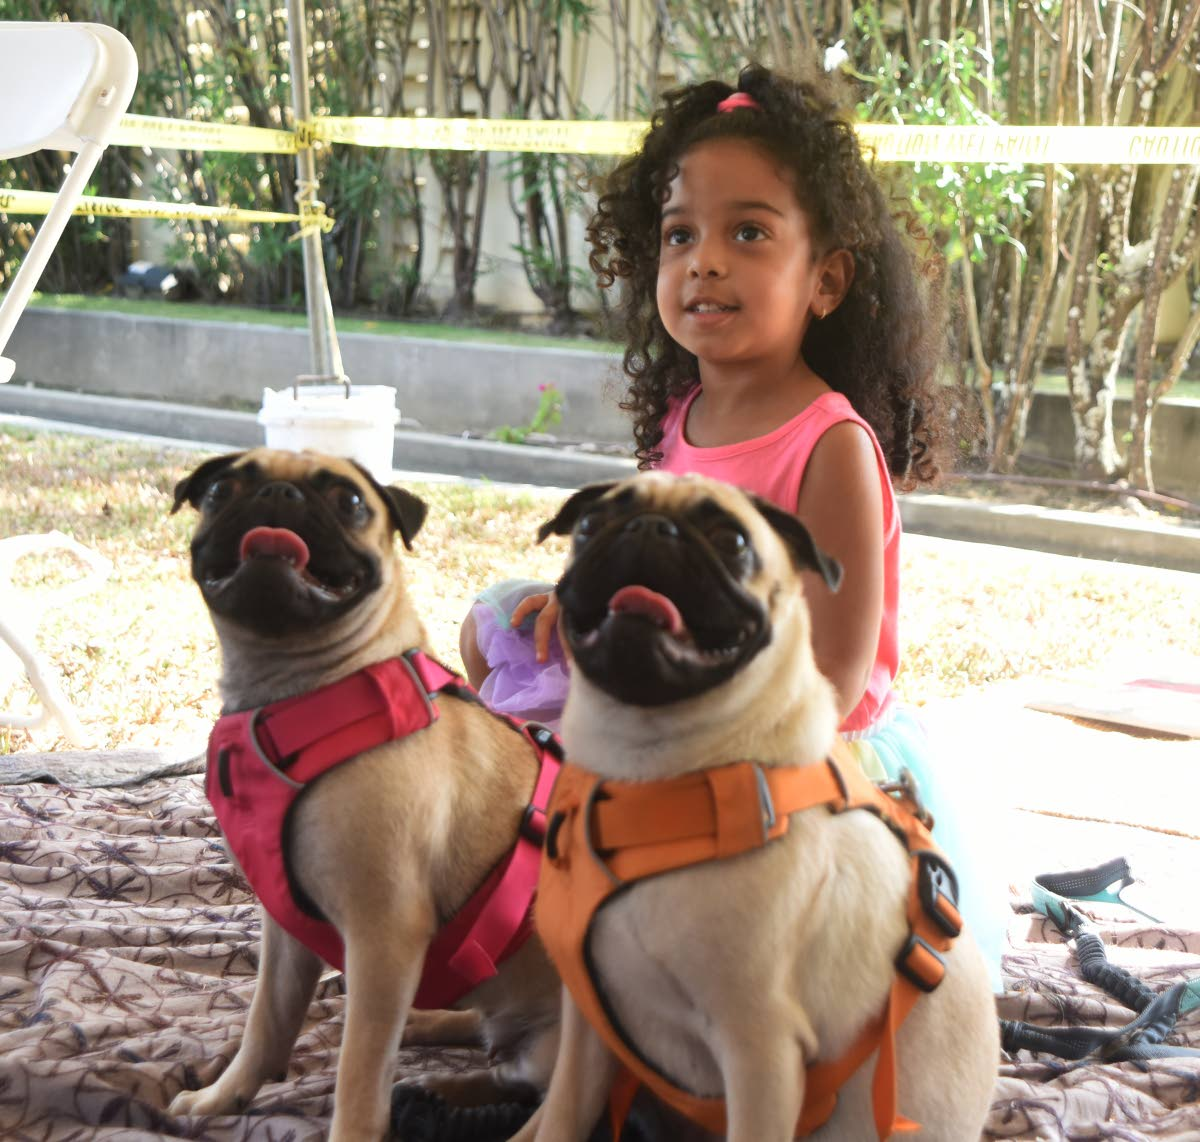 Four-year-old Khloe Lawrence made friends with these French bulldogs, Paris and Milan.   PHOTO BY KERWIN PIERRE